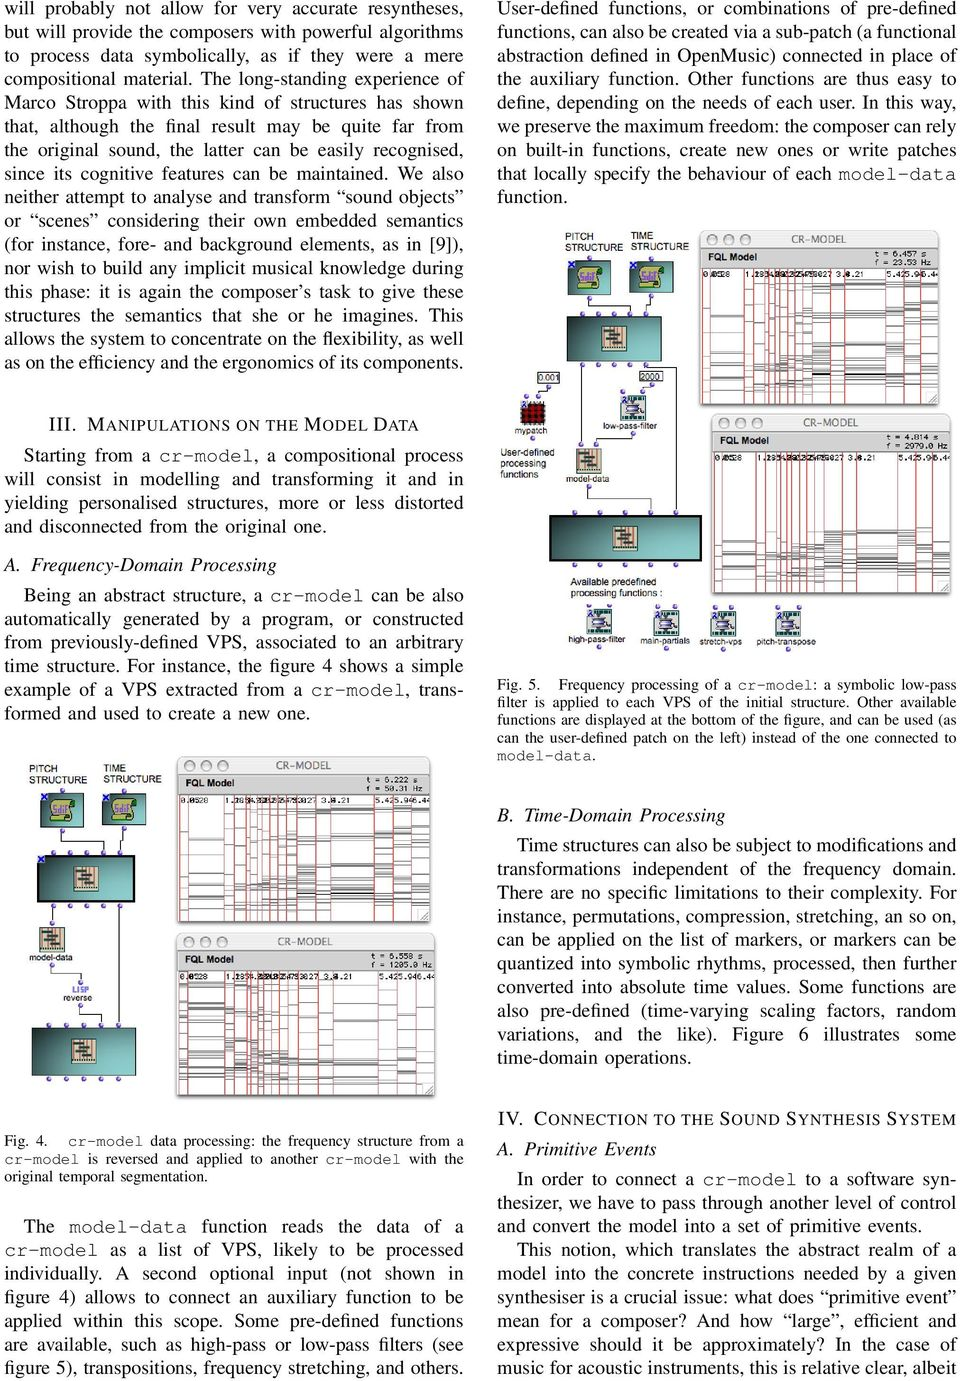 Generation and Representation of Data and Events for the